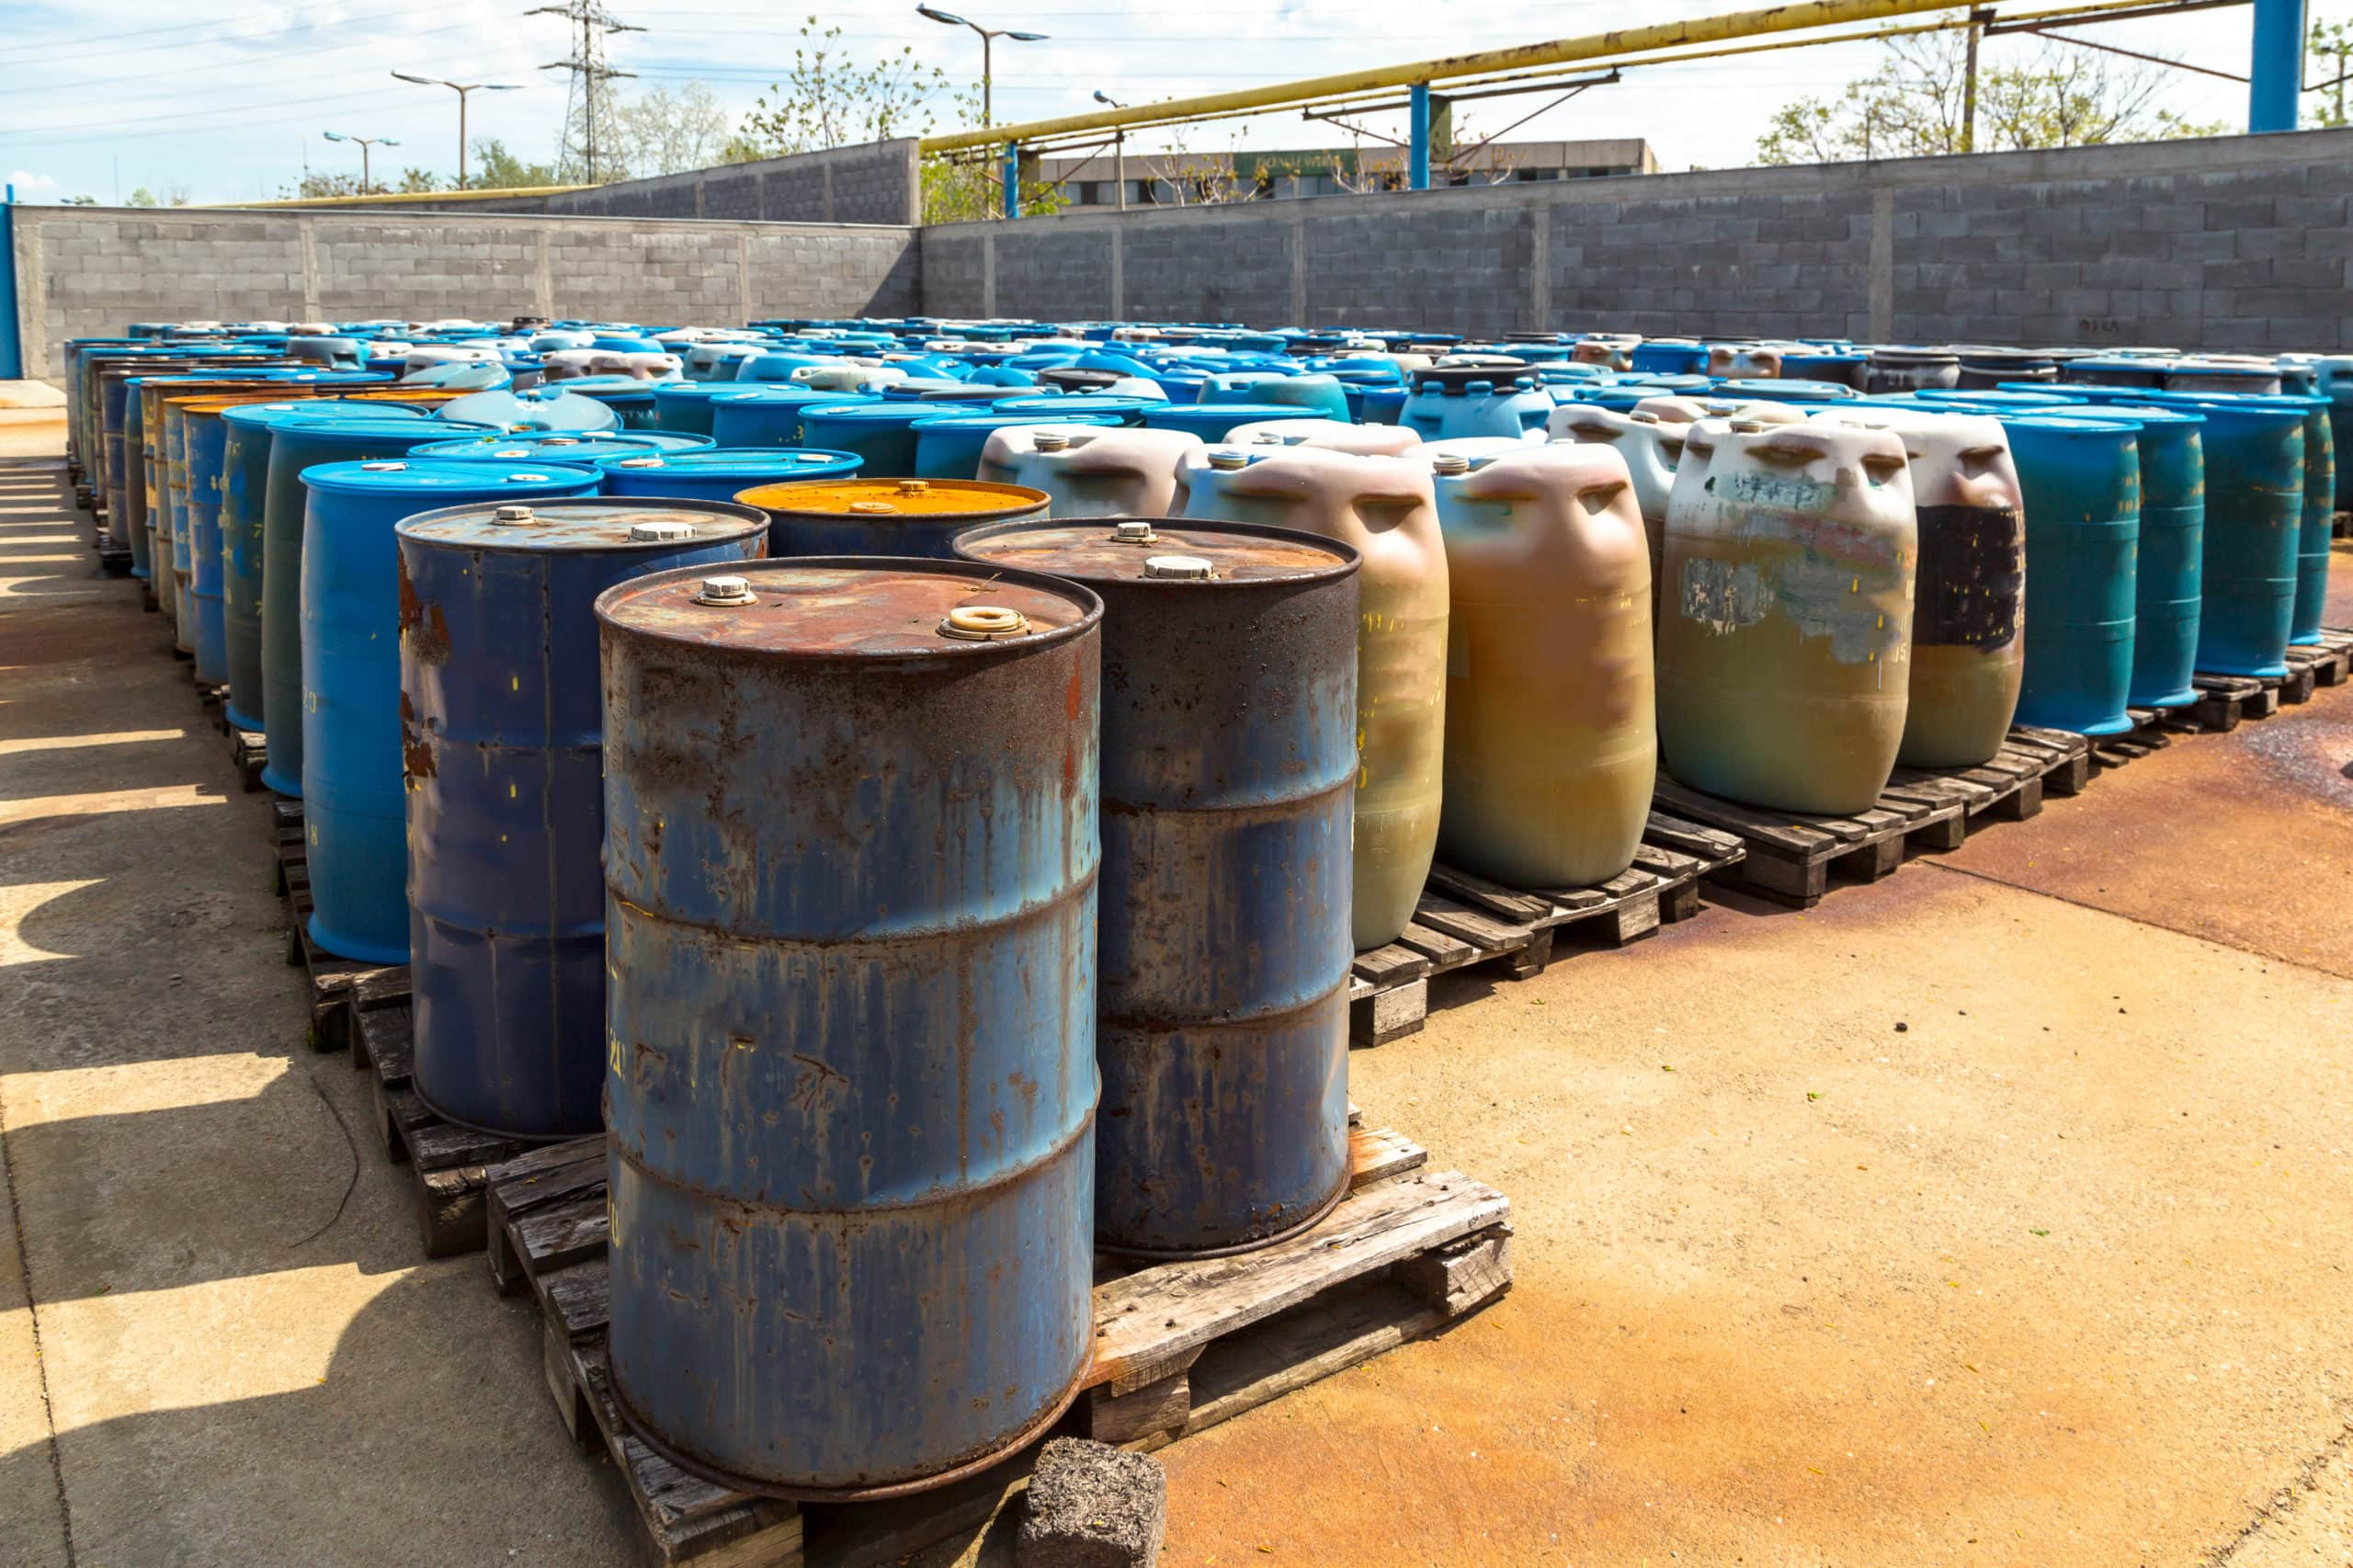 Barrels of toxic waste at the dump